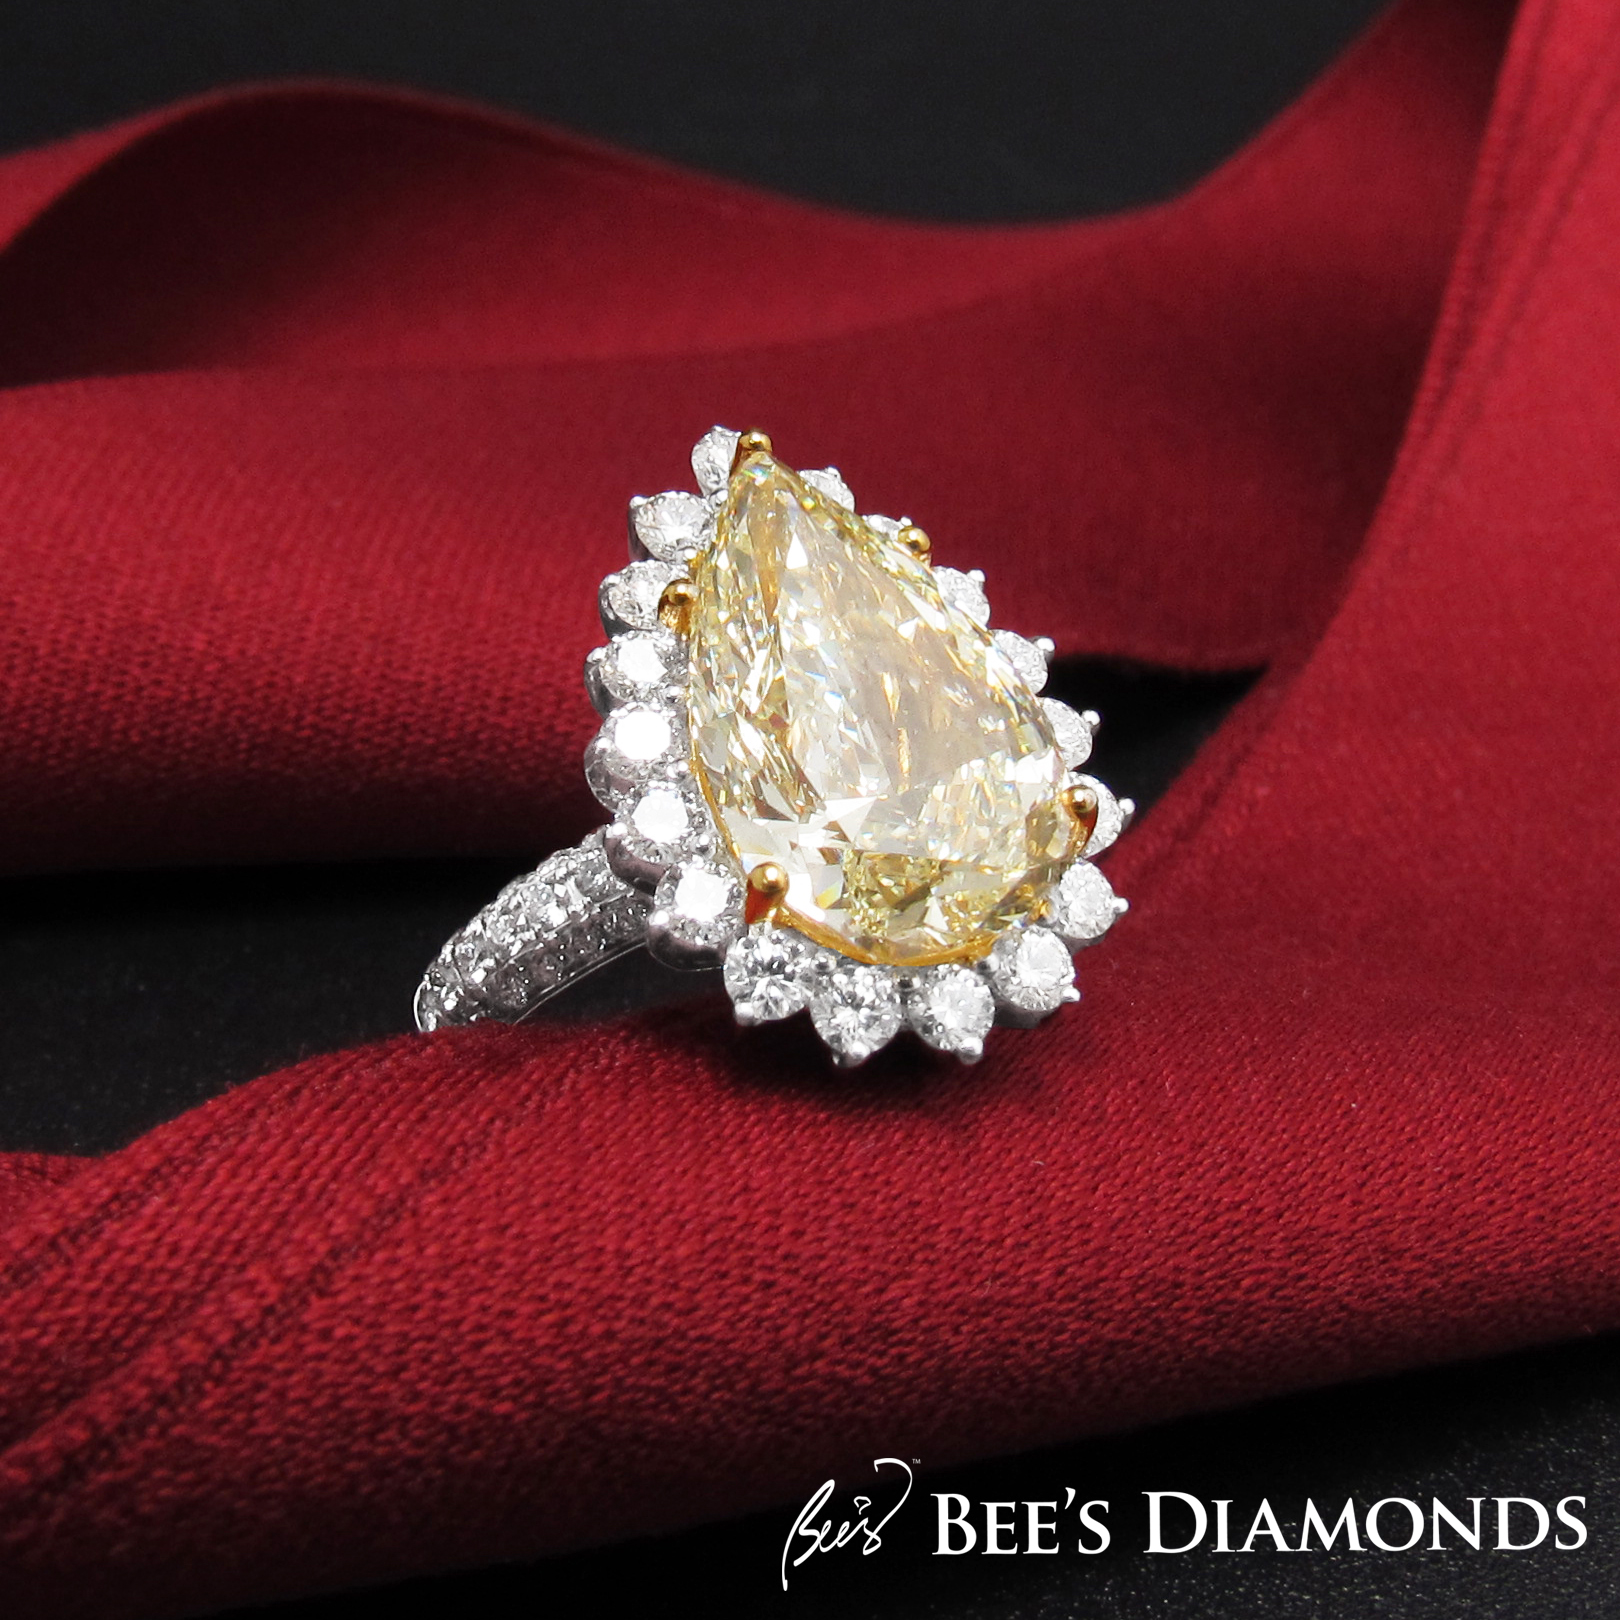 Large pear shape, fancy yellow diamond bespoke ring Hong Kong